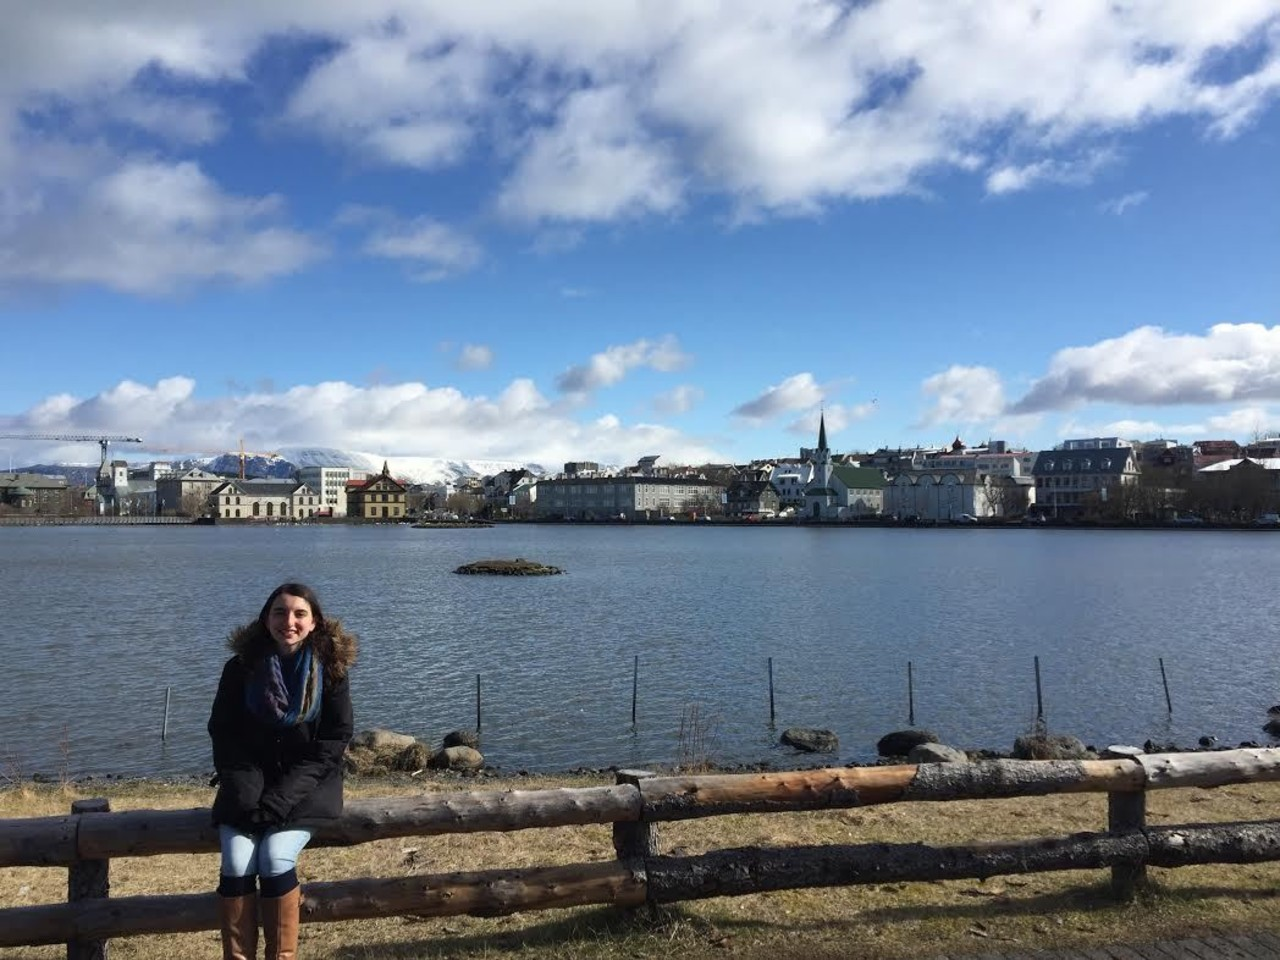 Sydney, Icelandic Mountain Guide's Adventurer of the Week, is sitting by the shore with a blue sky and buildings in the background.